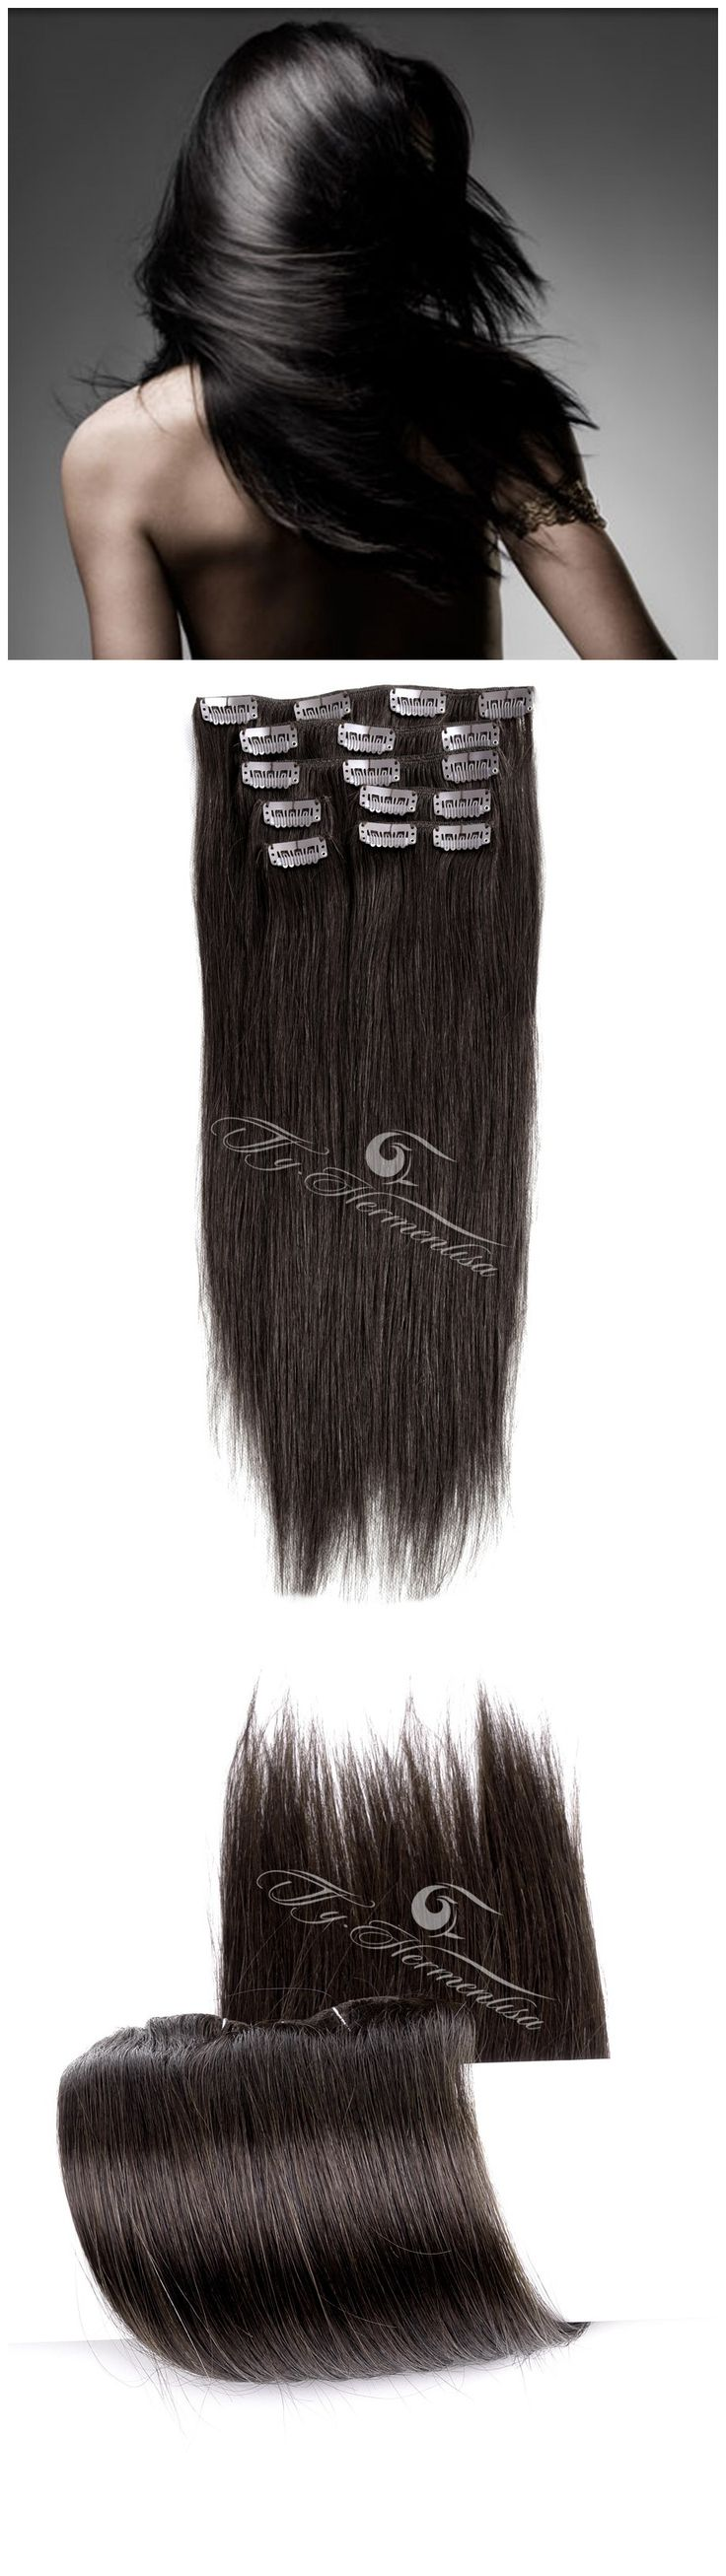 5885 best human hair extensions images on pinterest colours perfectly designed 7 pieces clip in remy human hair extensions darkest brown easy to apply put on and take off whenever and wherever you want pmusecretfo Images